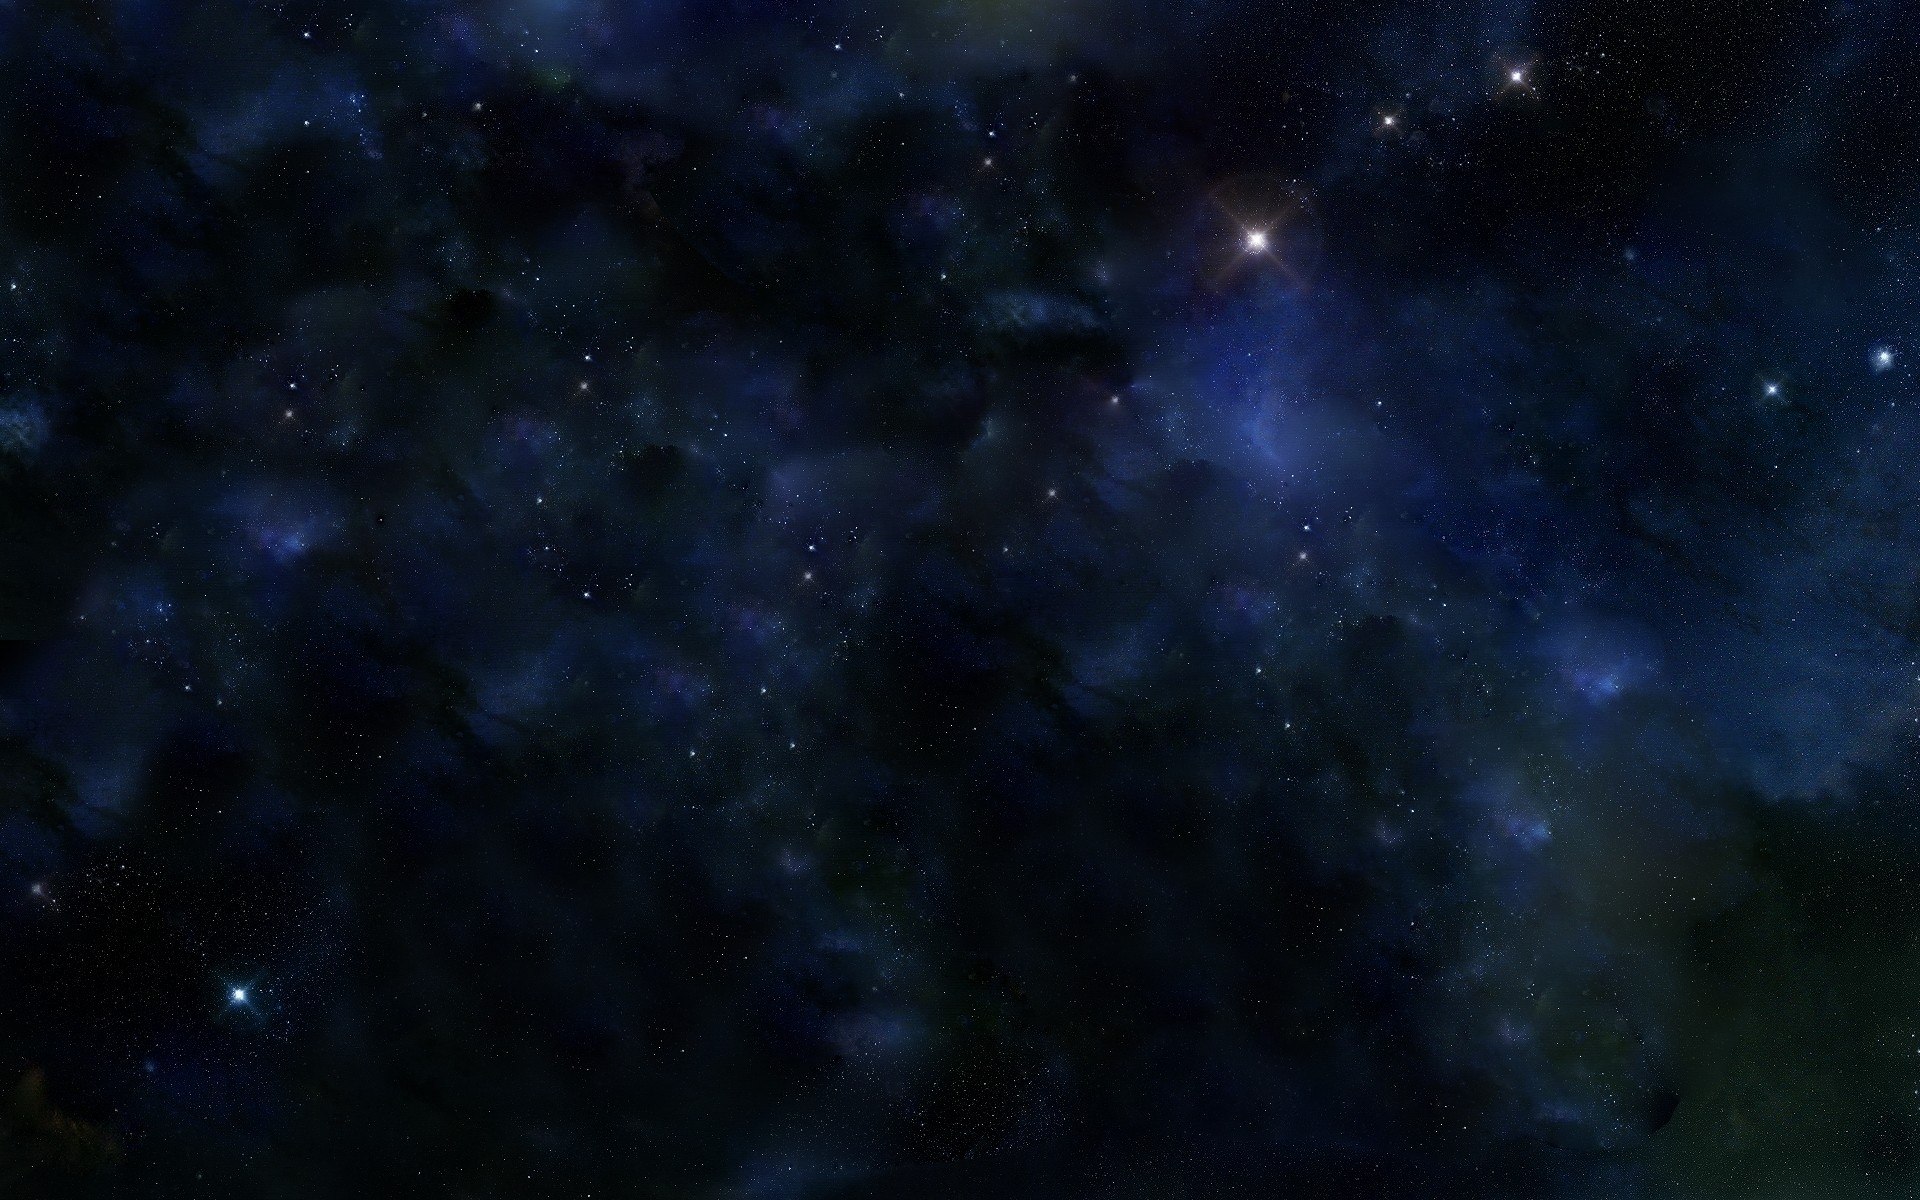 1920x1200 space background wallpaper